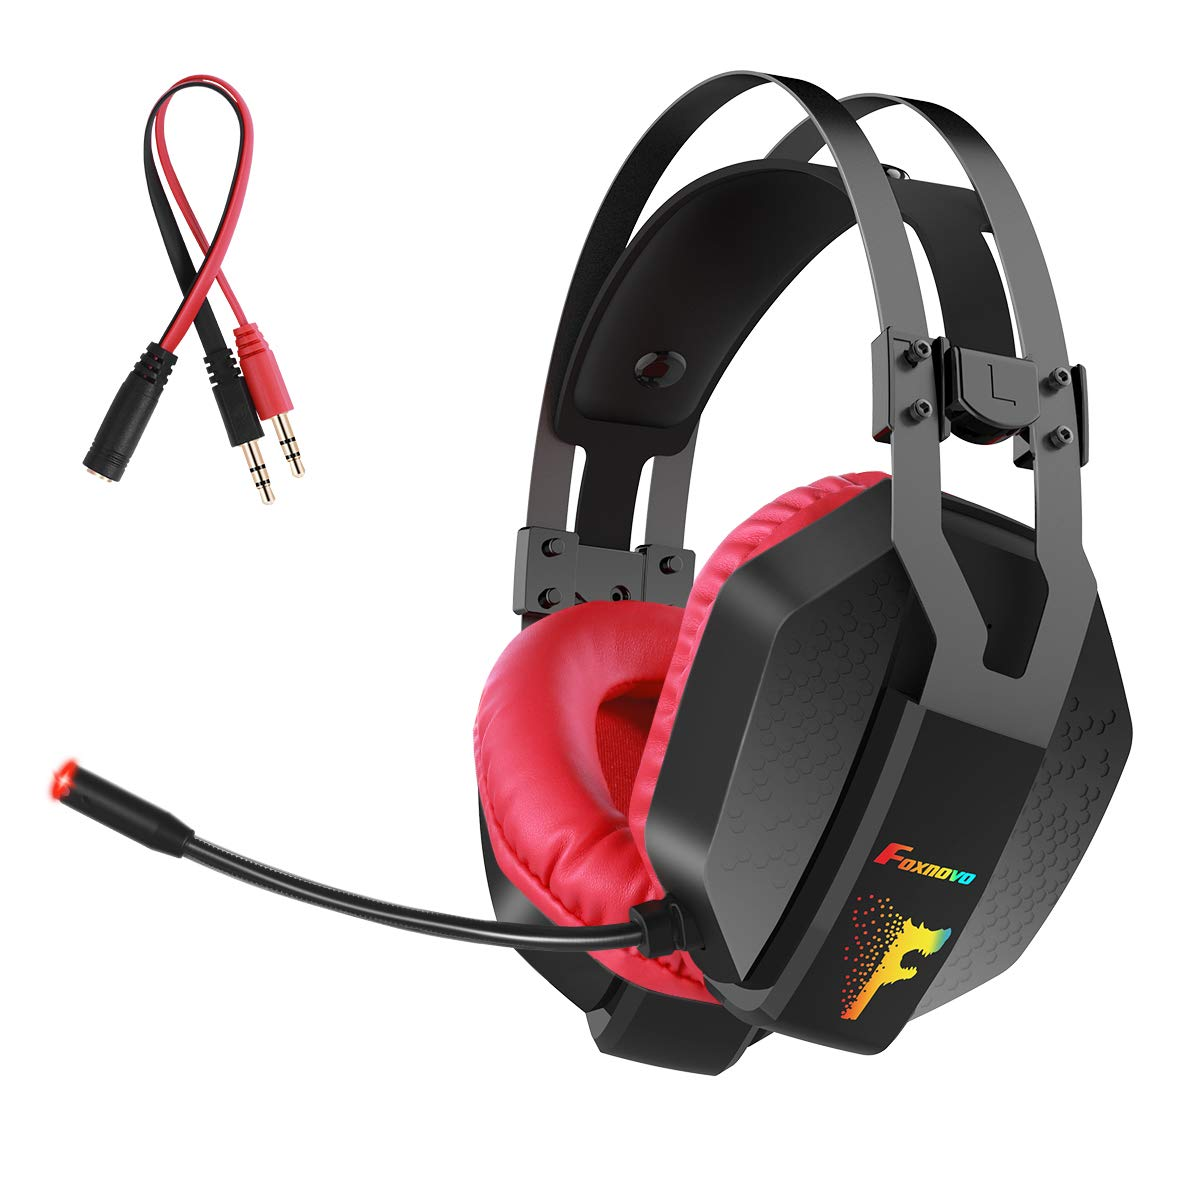 Gaming Headset for PS4, Xbox One, PC, Nintendo Switch, Foxnovo Over Ear Headphones Noise Cancelling with Microphone, RGB Led, Bass Surround Sound, Volume Control, Soft Padding Memory Earmuffs by Foxnovo